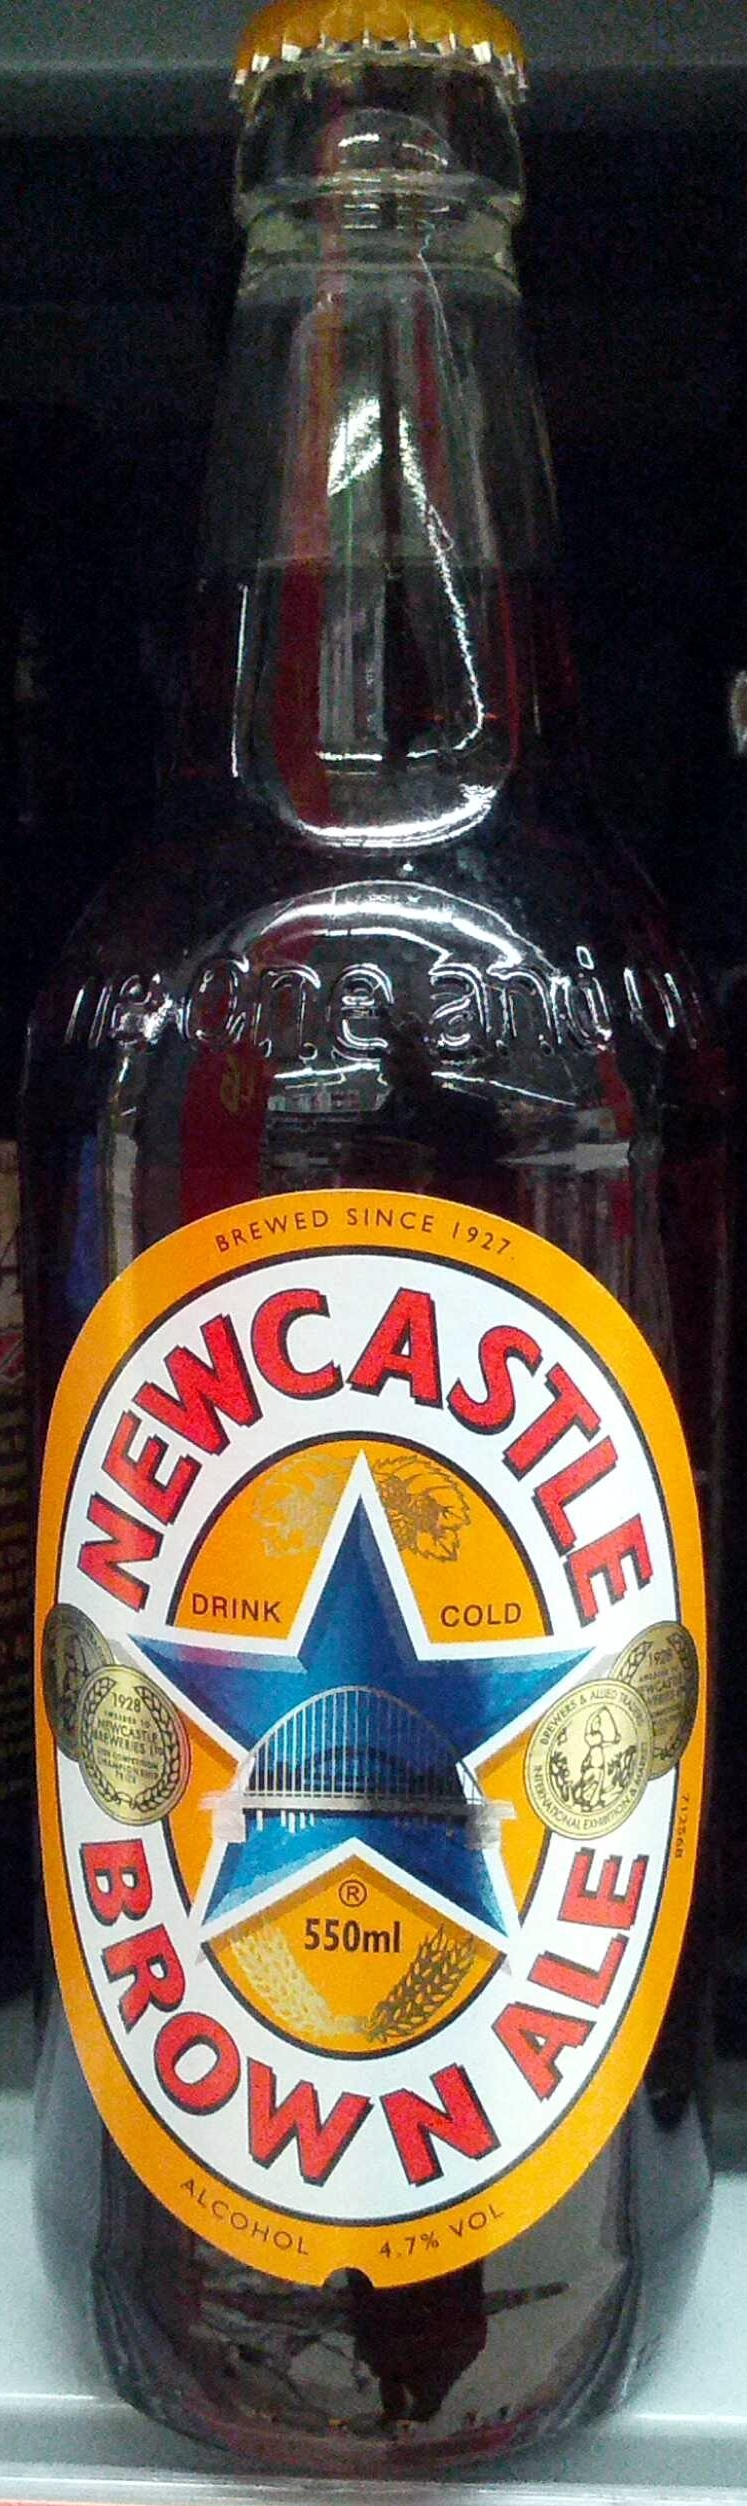 Newcastle Brown Ale - Product